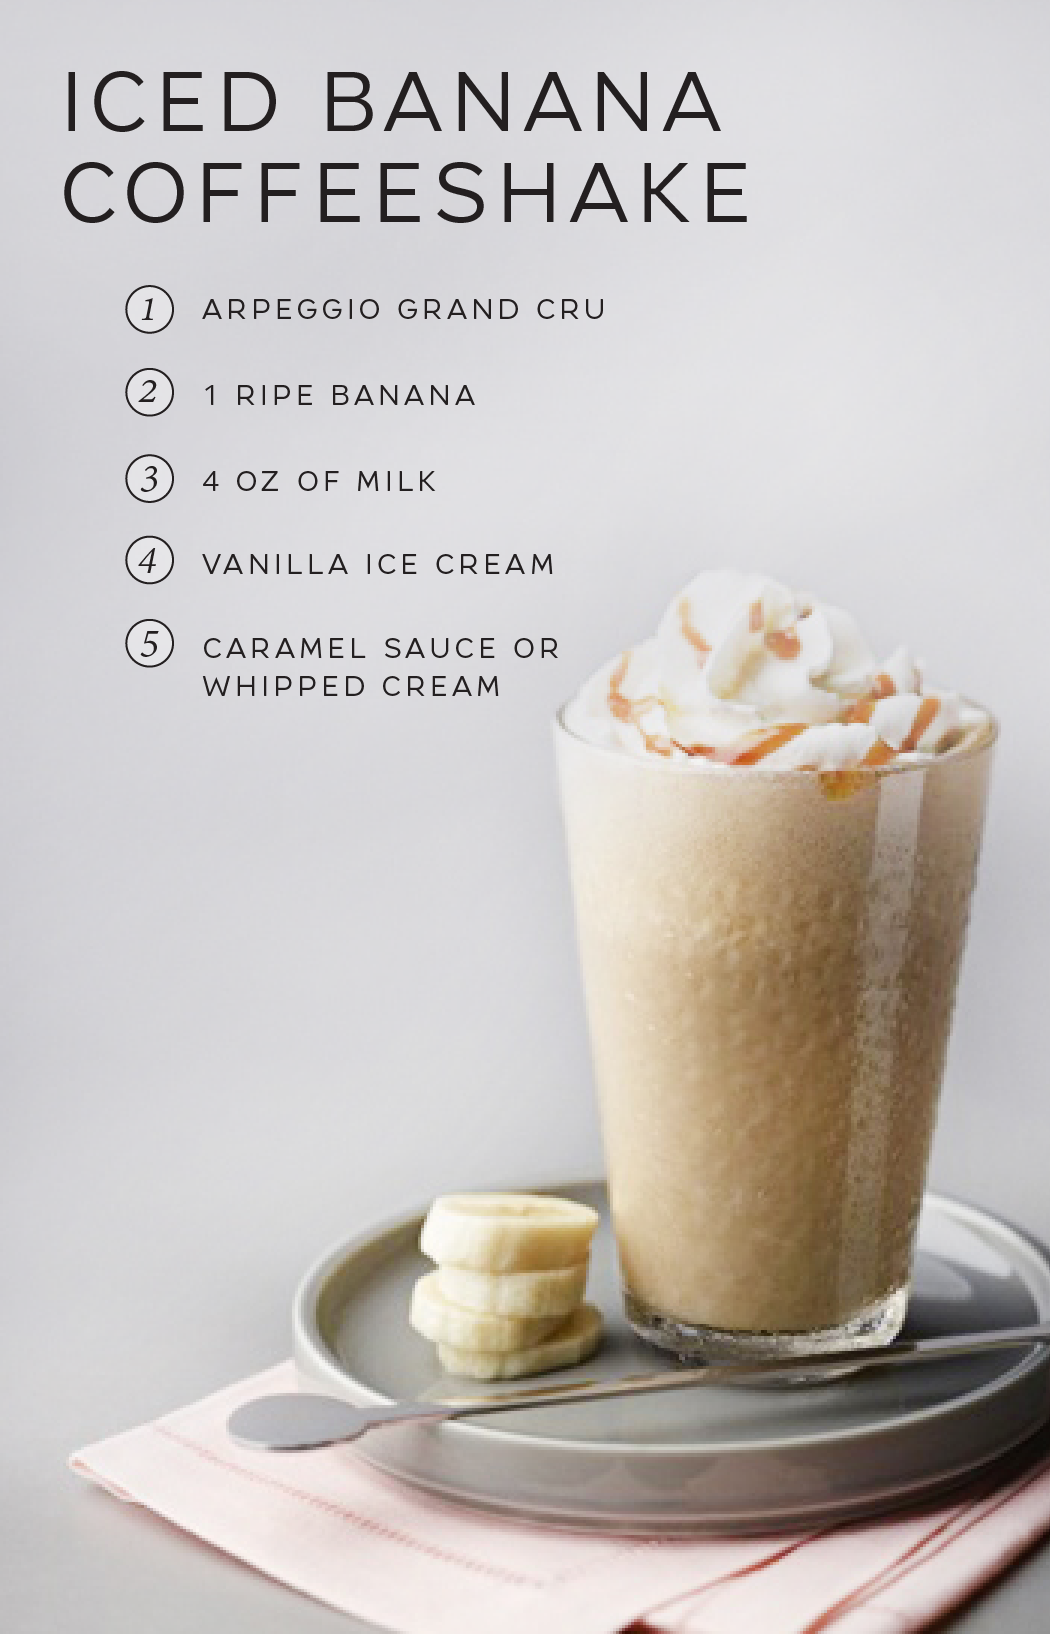 With Warmer Weather Well On Its Way This Iced Banana Coffeeshake From Nespresso Is The Perfect Way To Coo Coffee Recipes Nespresso Recipes Easy Coffee Recipes